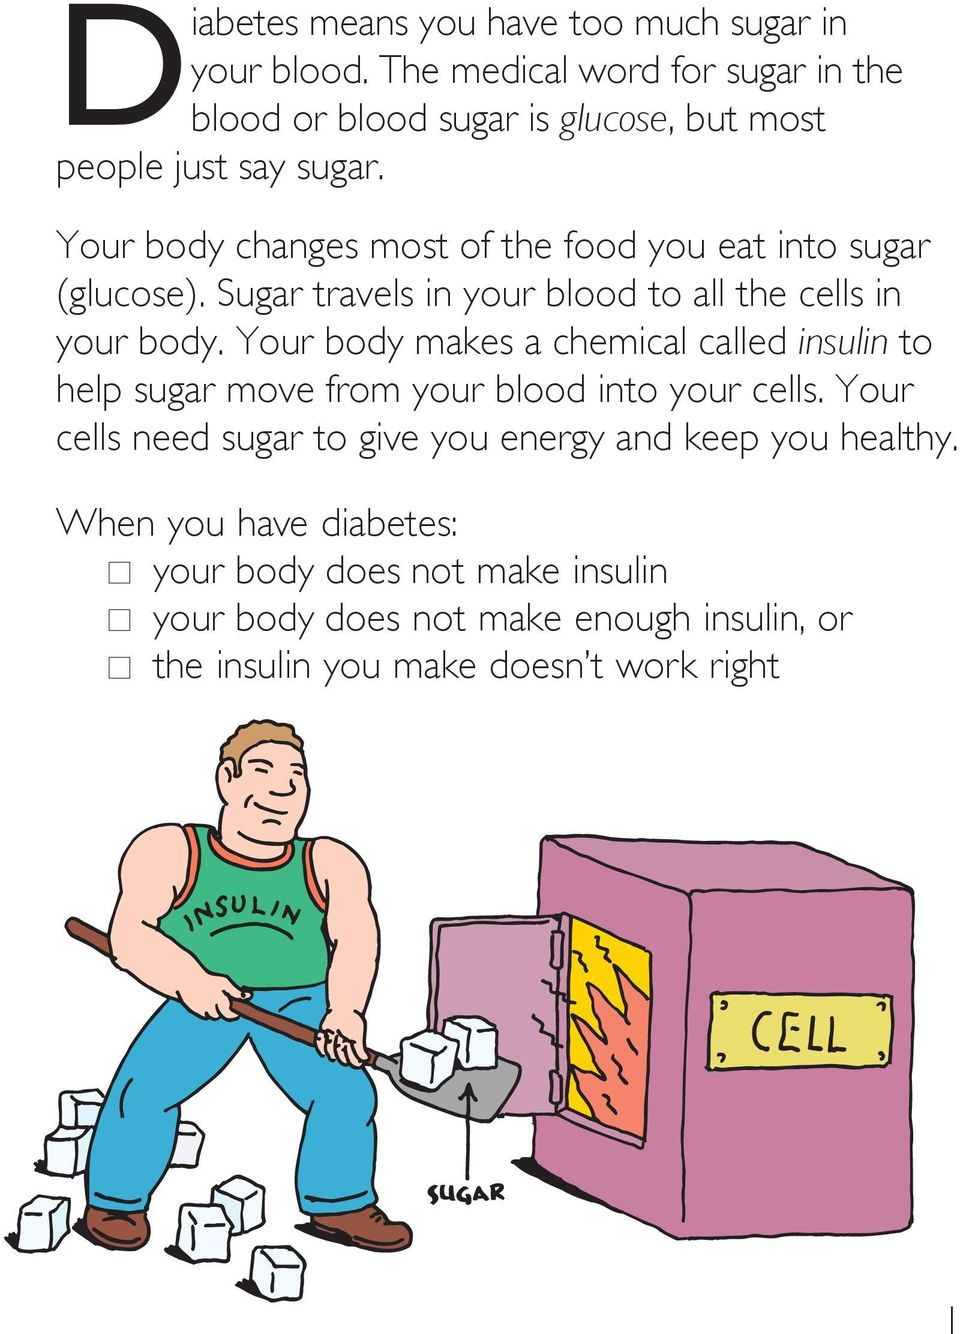 Your body changes most of the food you eat into sugar (glucose). Sugar travels in your blood to all the cells in your body.